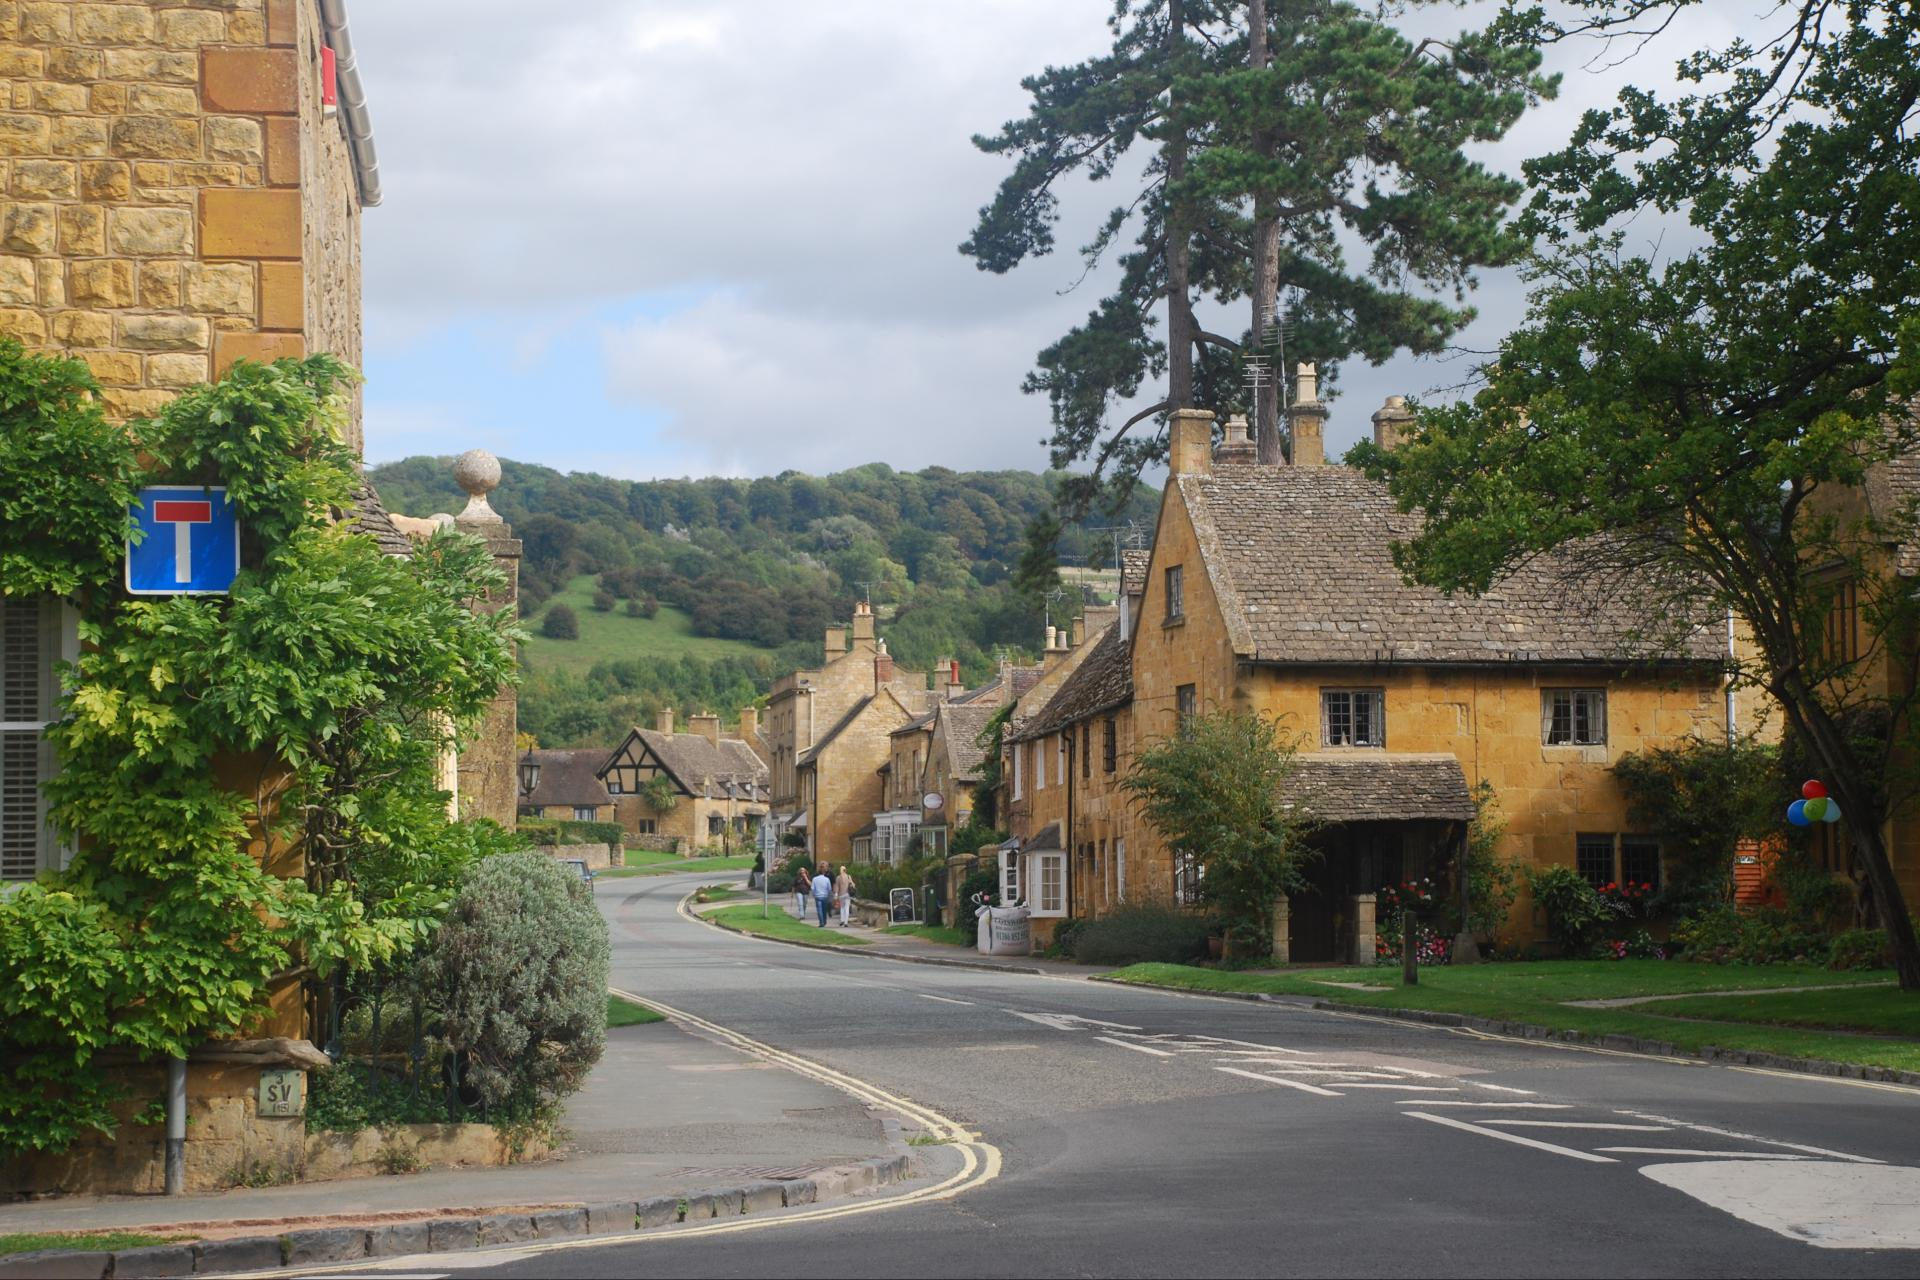 self guided bicycle tour in the cotswolds of England